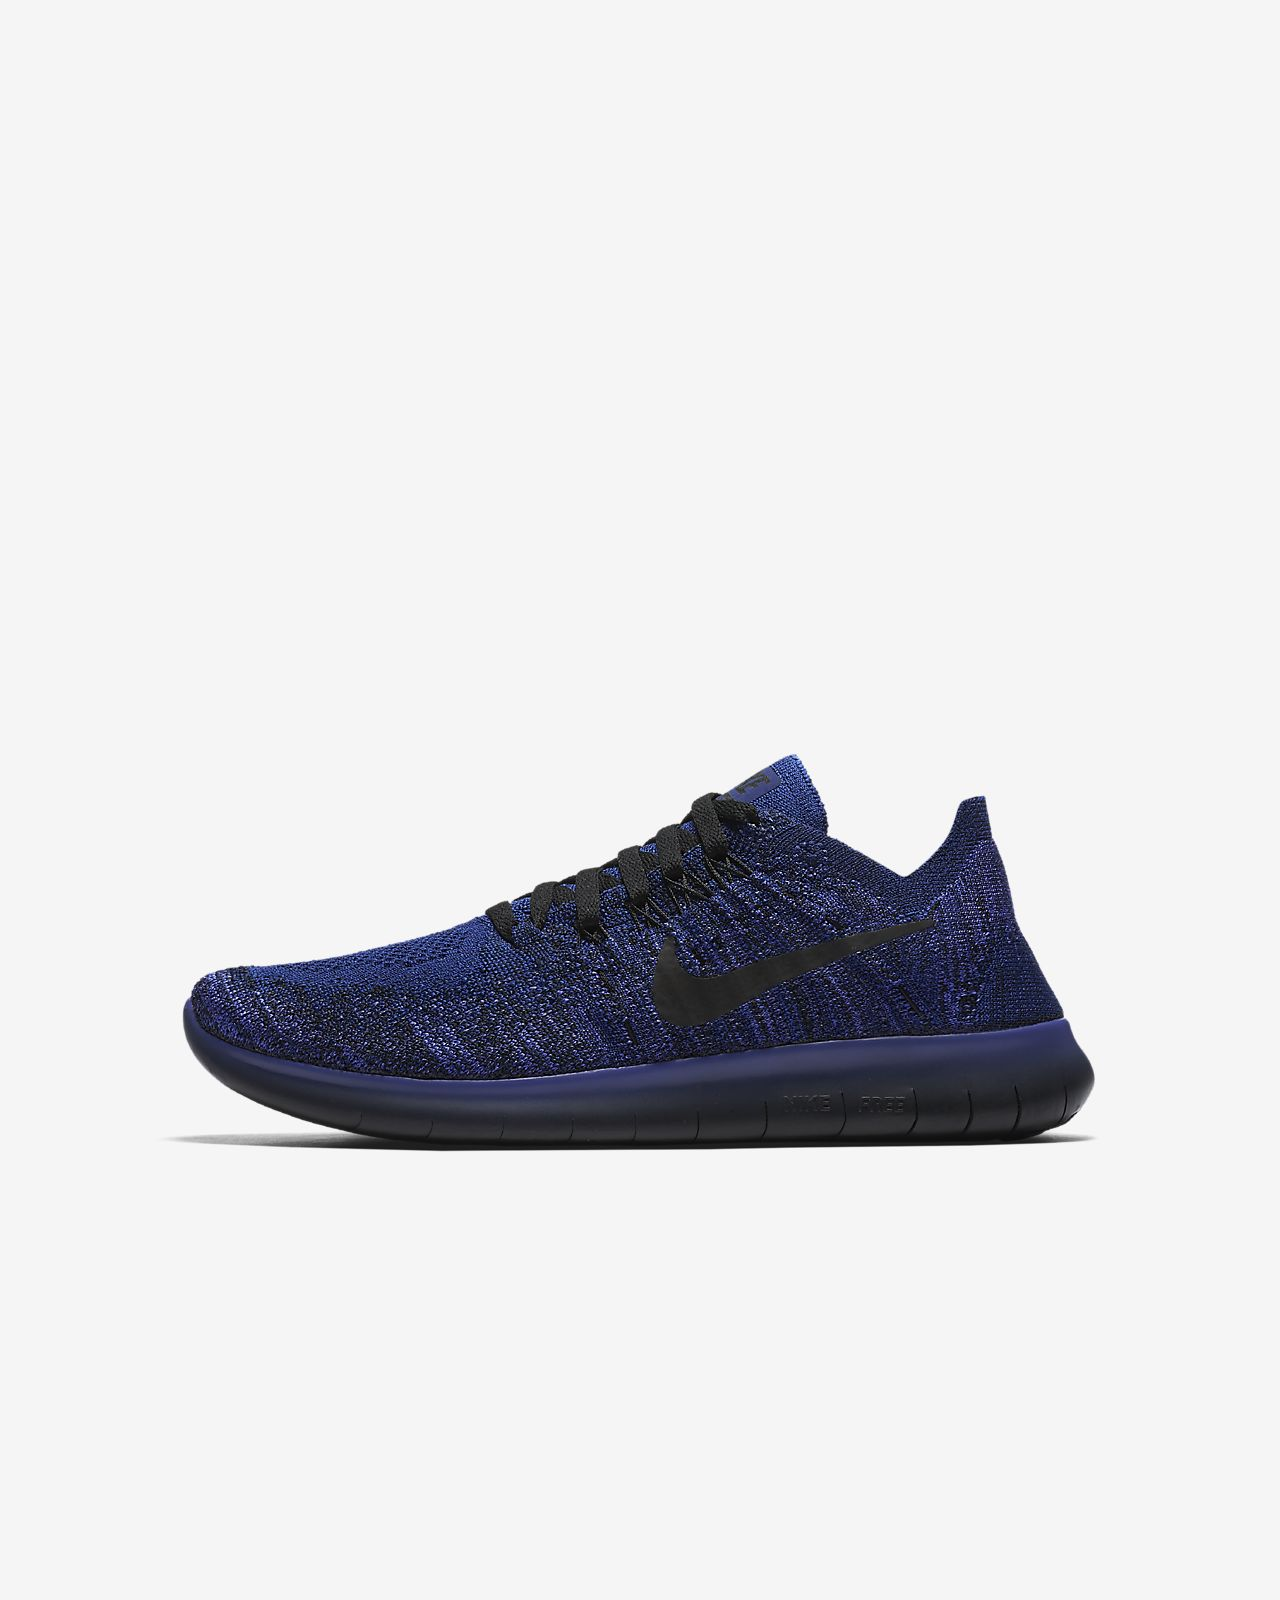 Chaussures Nike Free RN Flyknit 2017 LsztNS8